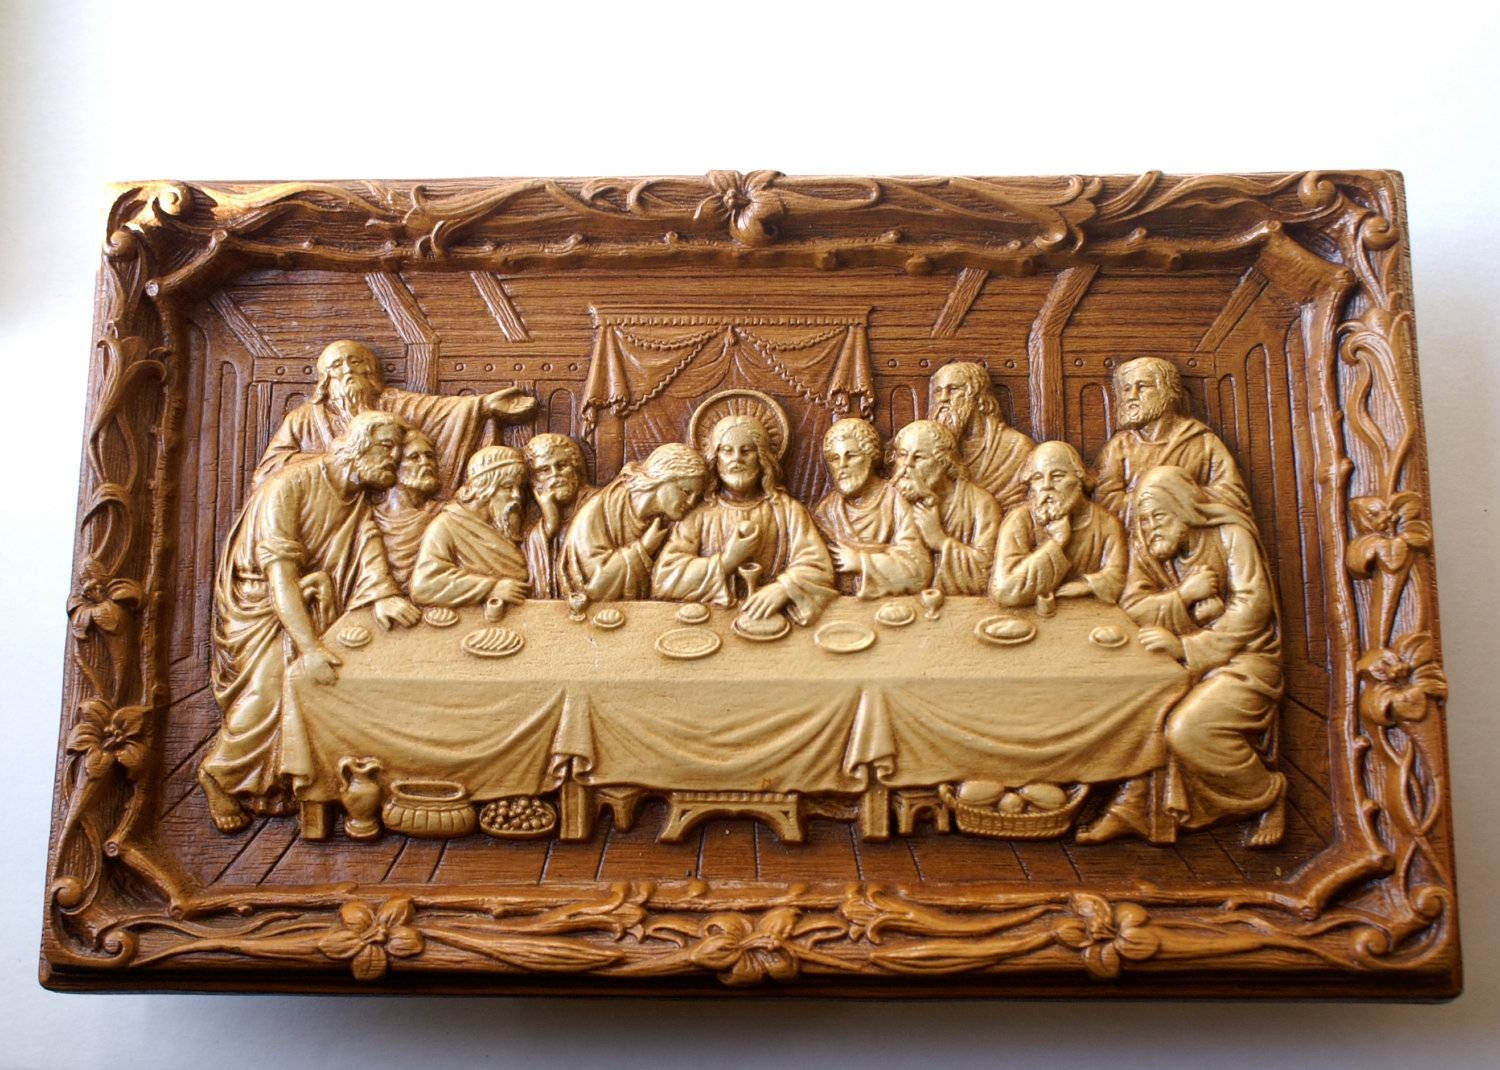 Wall Decor: Best Of Last Supper Wall Decor Last Supper 3D Wall With Most Recent The Last Supper Wall Art (View 19 of 20)